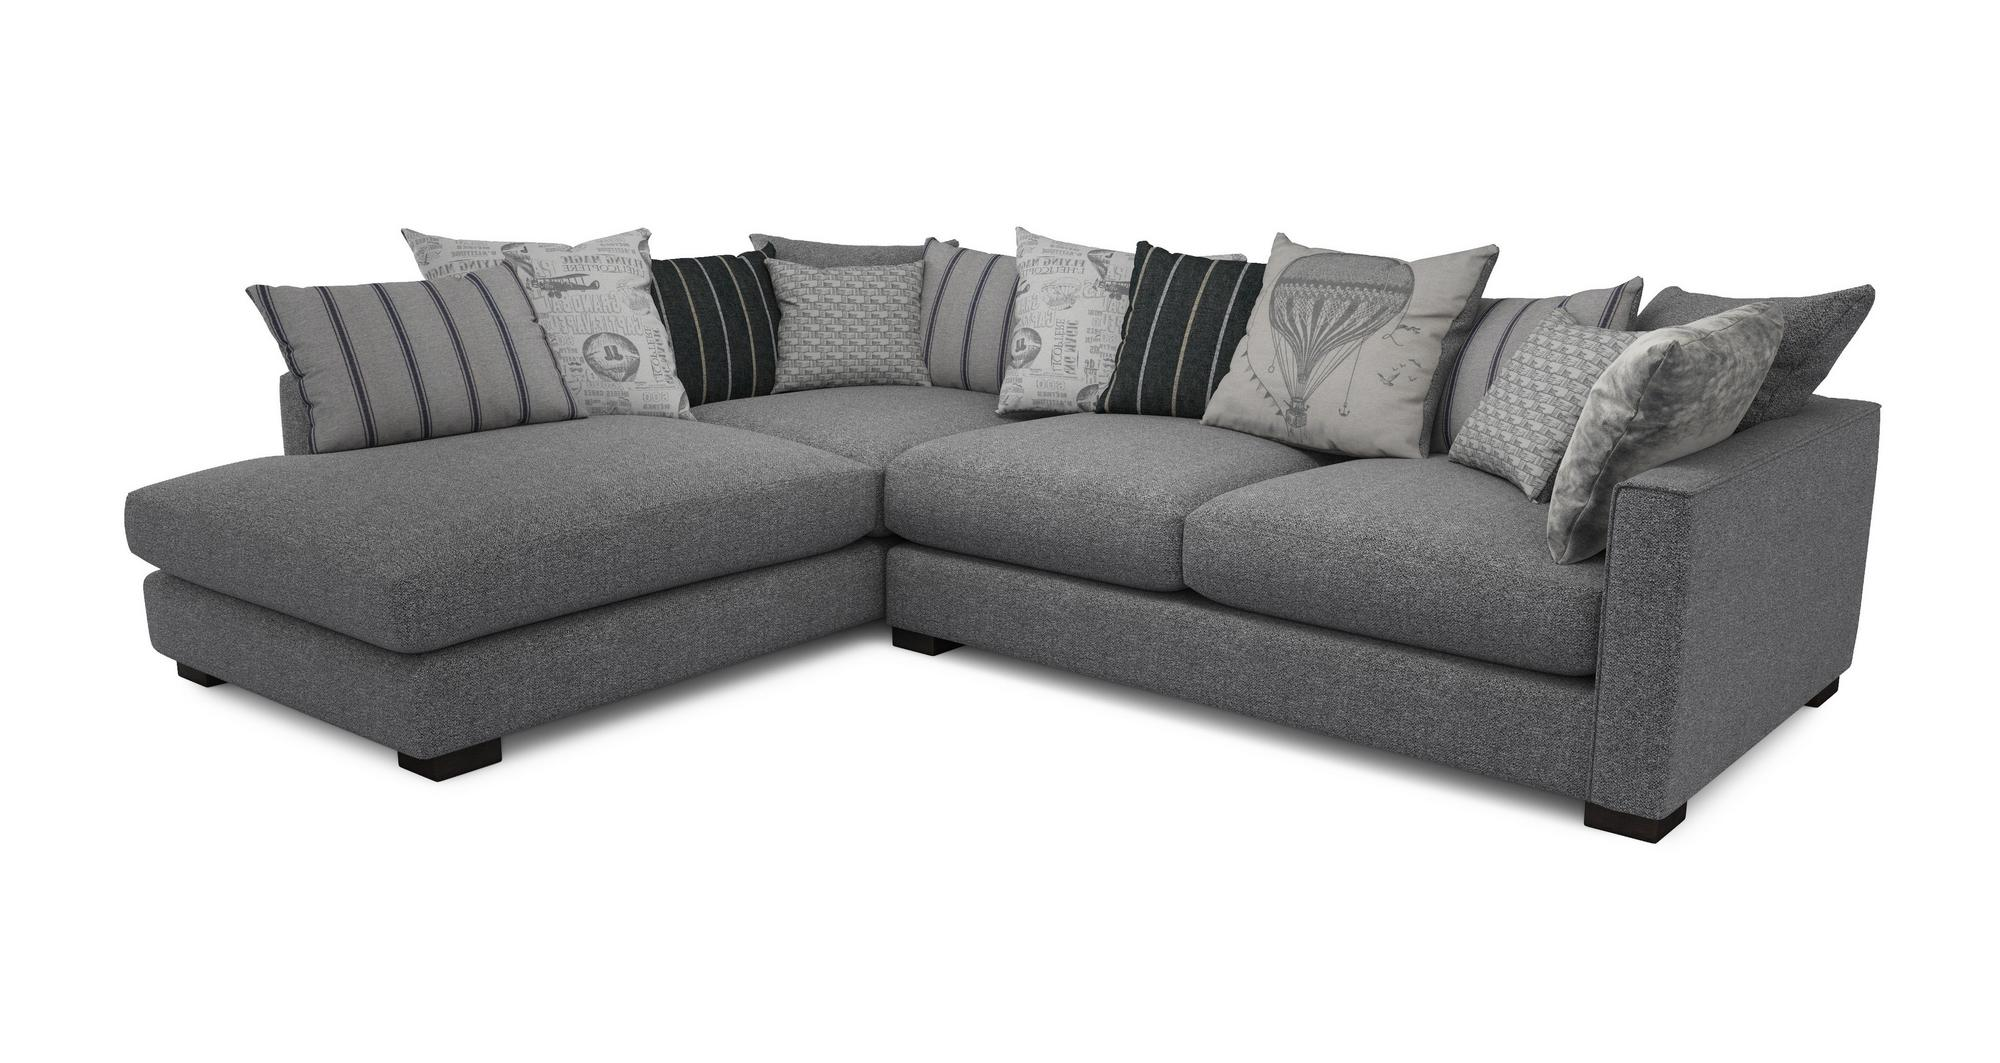 DFS Voyage Charcoal Grey Fabric Corner Sofa And Armchair EBay